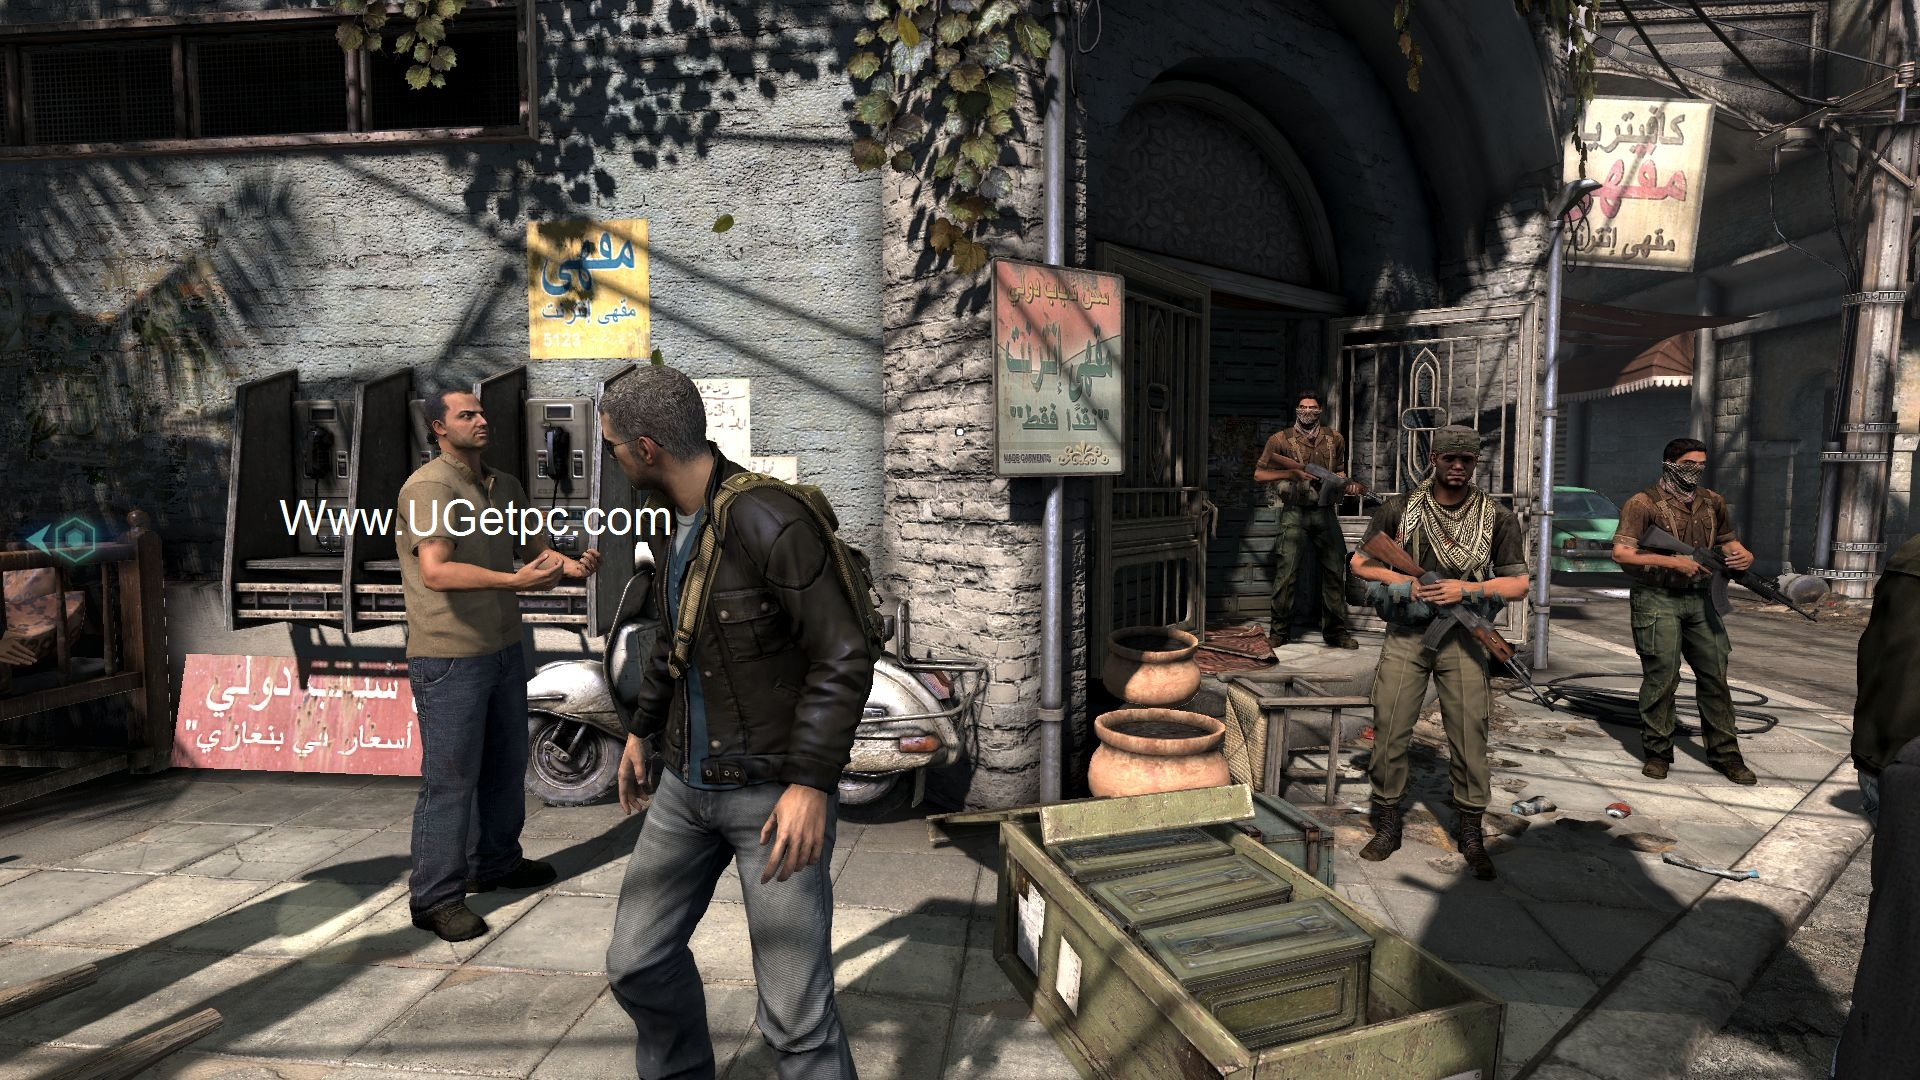 Splinter-Cell-Blacklist-pic-UGetpc